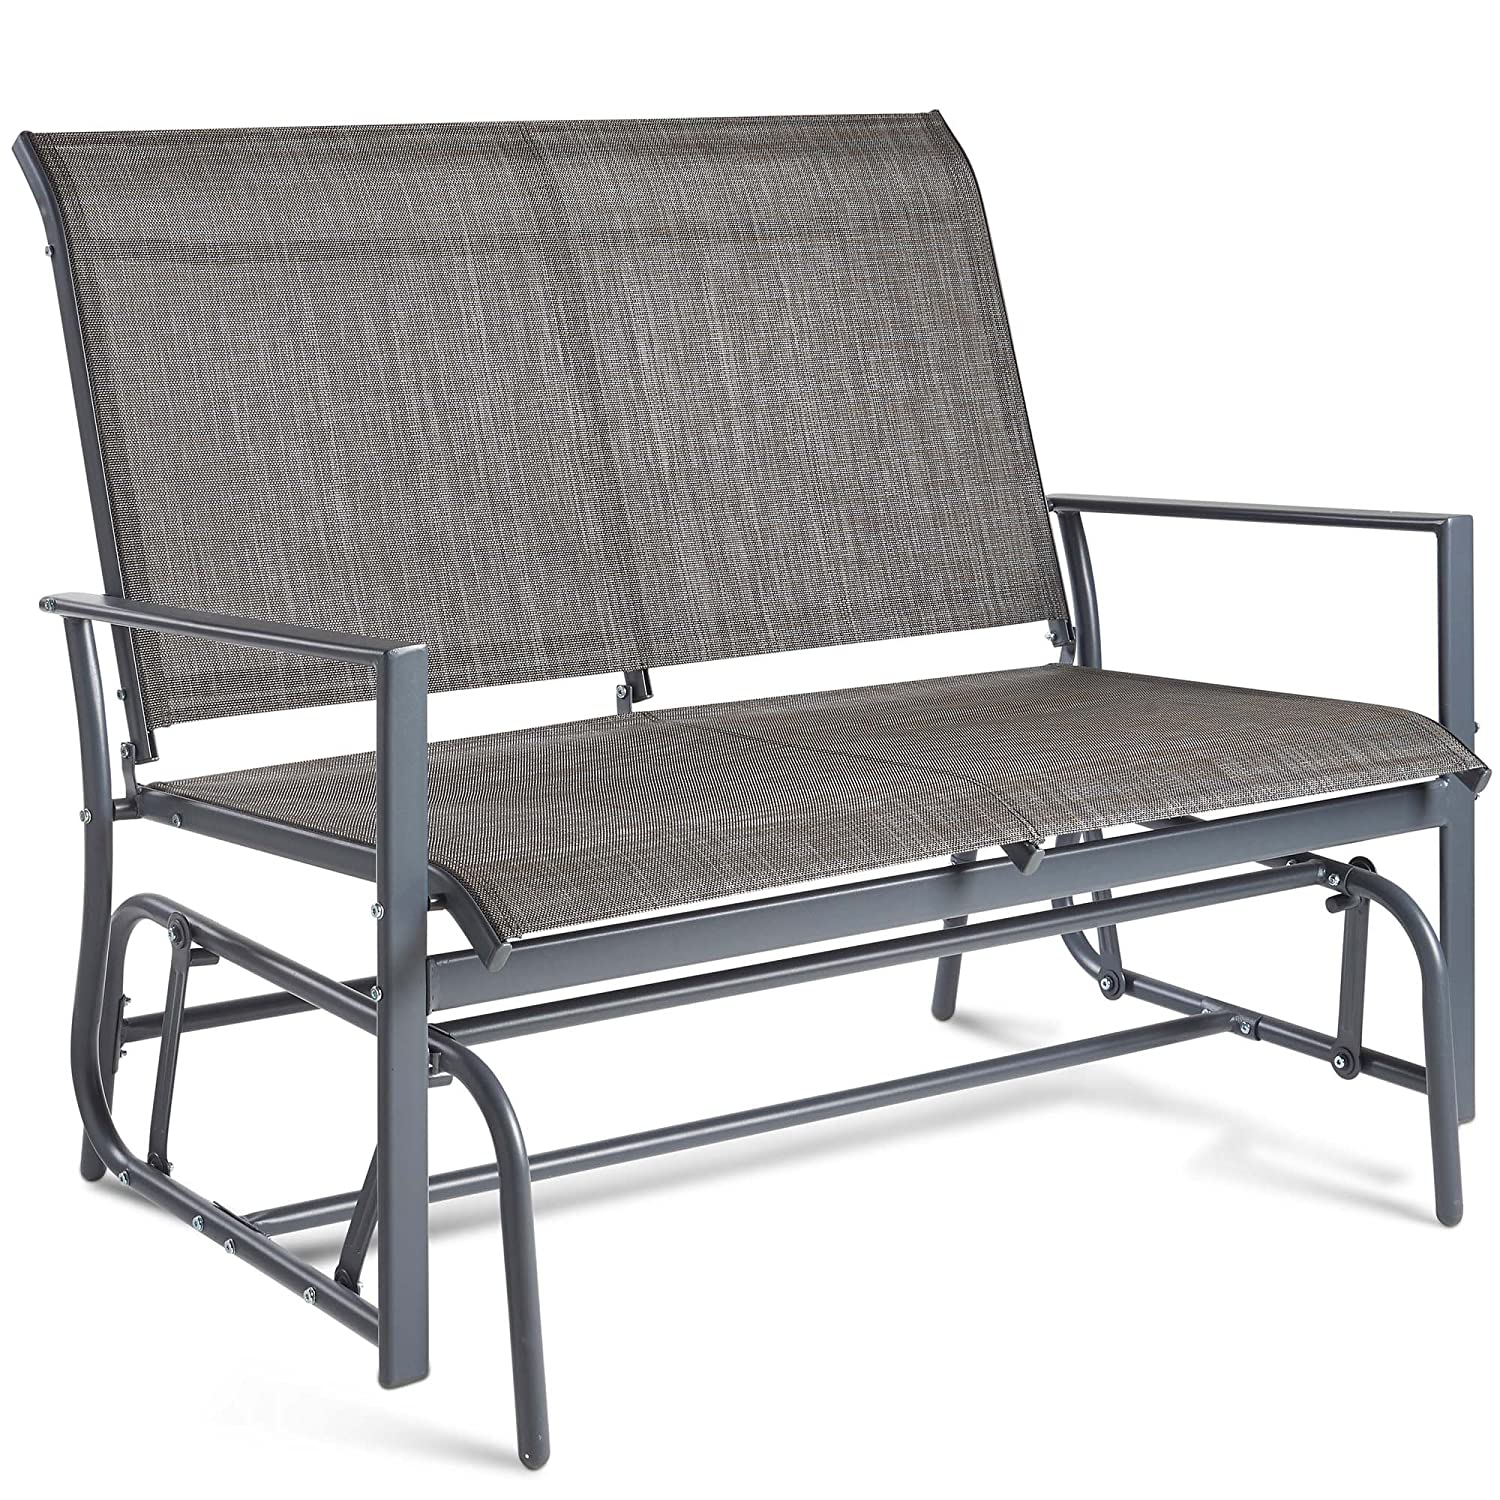 VonHaus 2 Seater Garden Glider Bench – Grey Textoline/Mesh Fabric Swing Rocking Seat – For Outdoor Decking, Balcony, Patio Or Terrace Domu Brands